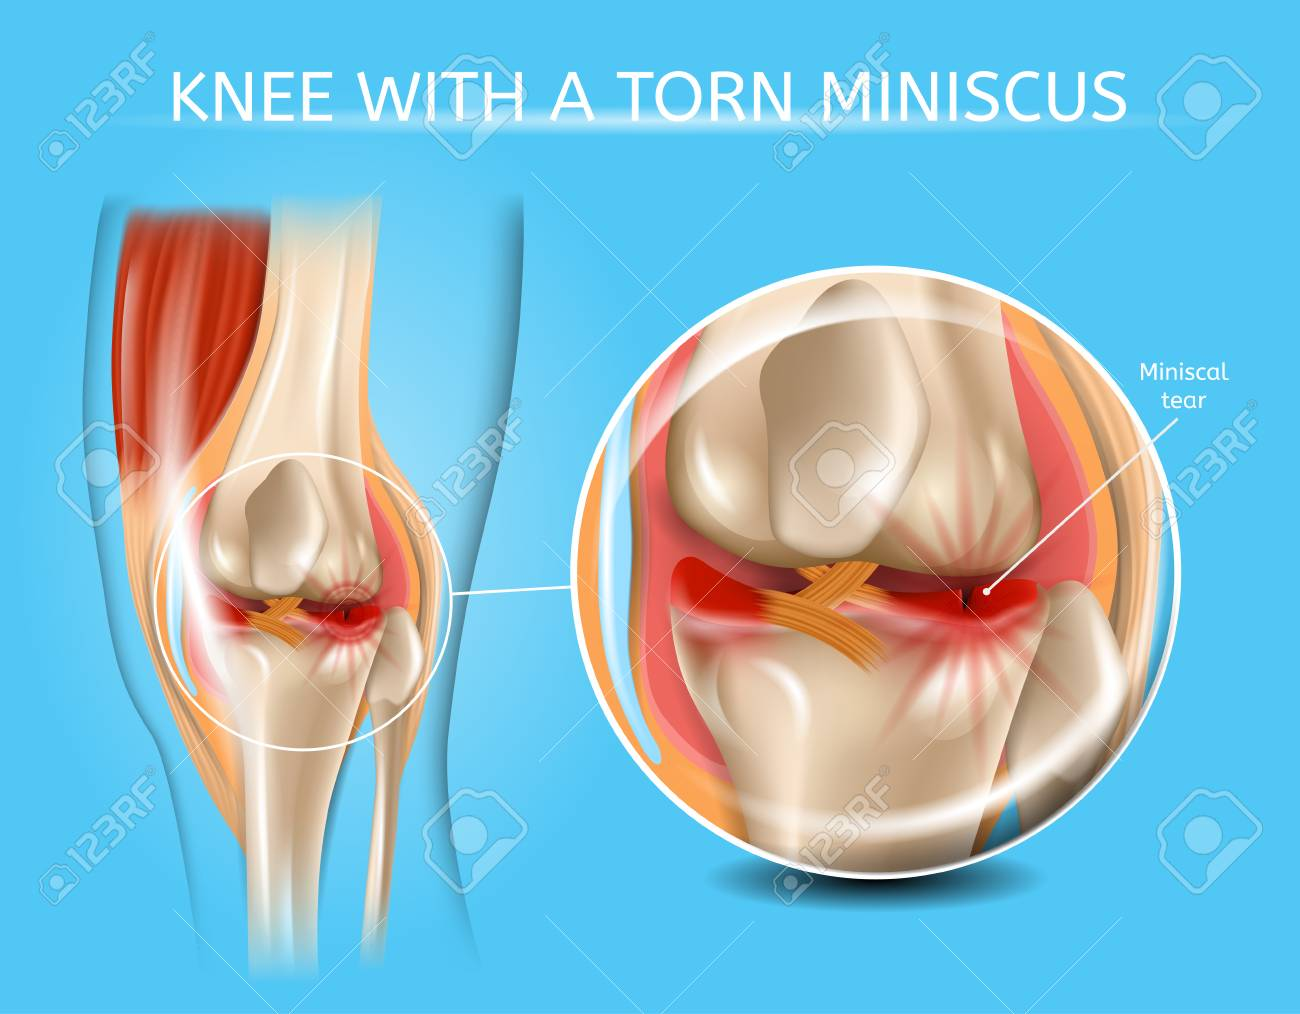 Knee with Torn Meniscus Realistic Vector Medical Scheme with Damaged Knee Joint and Magnified Painful Meniscus Tear Anatomical Illustration. Musculoskeletal System and Joints Injuries, Meniscus Trauma - 112254008